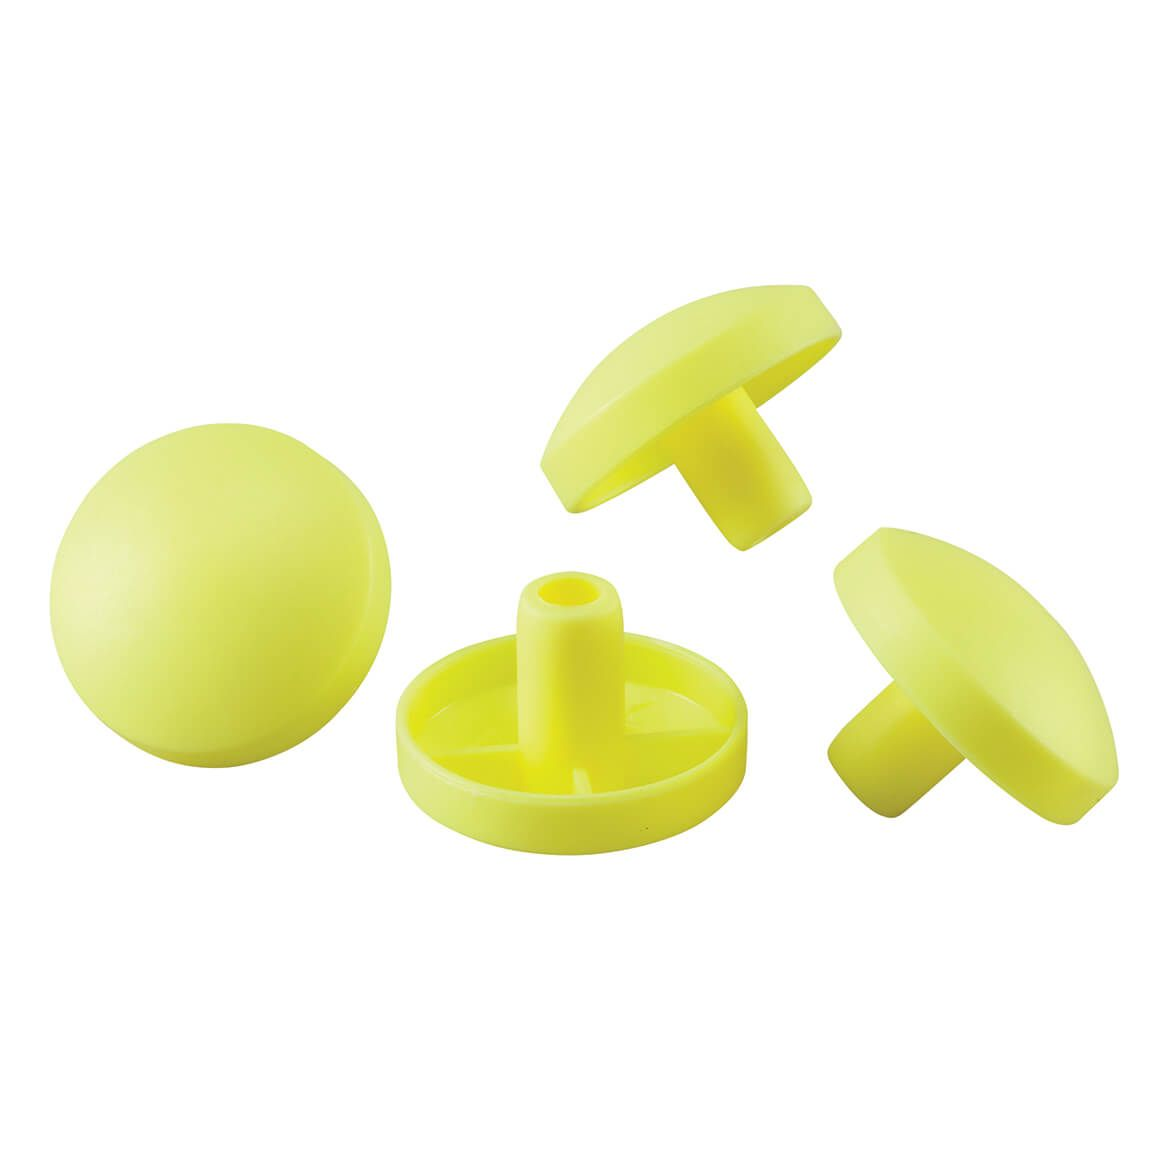 Walker Glide Cap Replacements - 4 Pack-348872